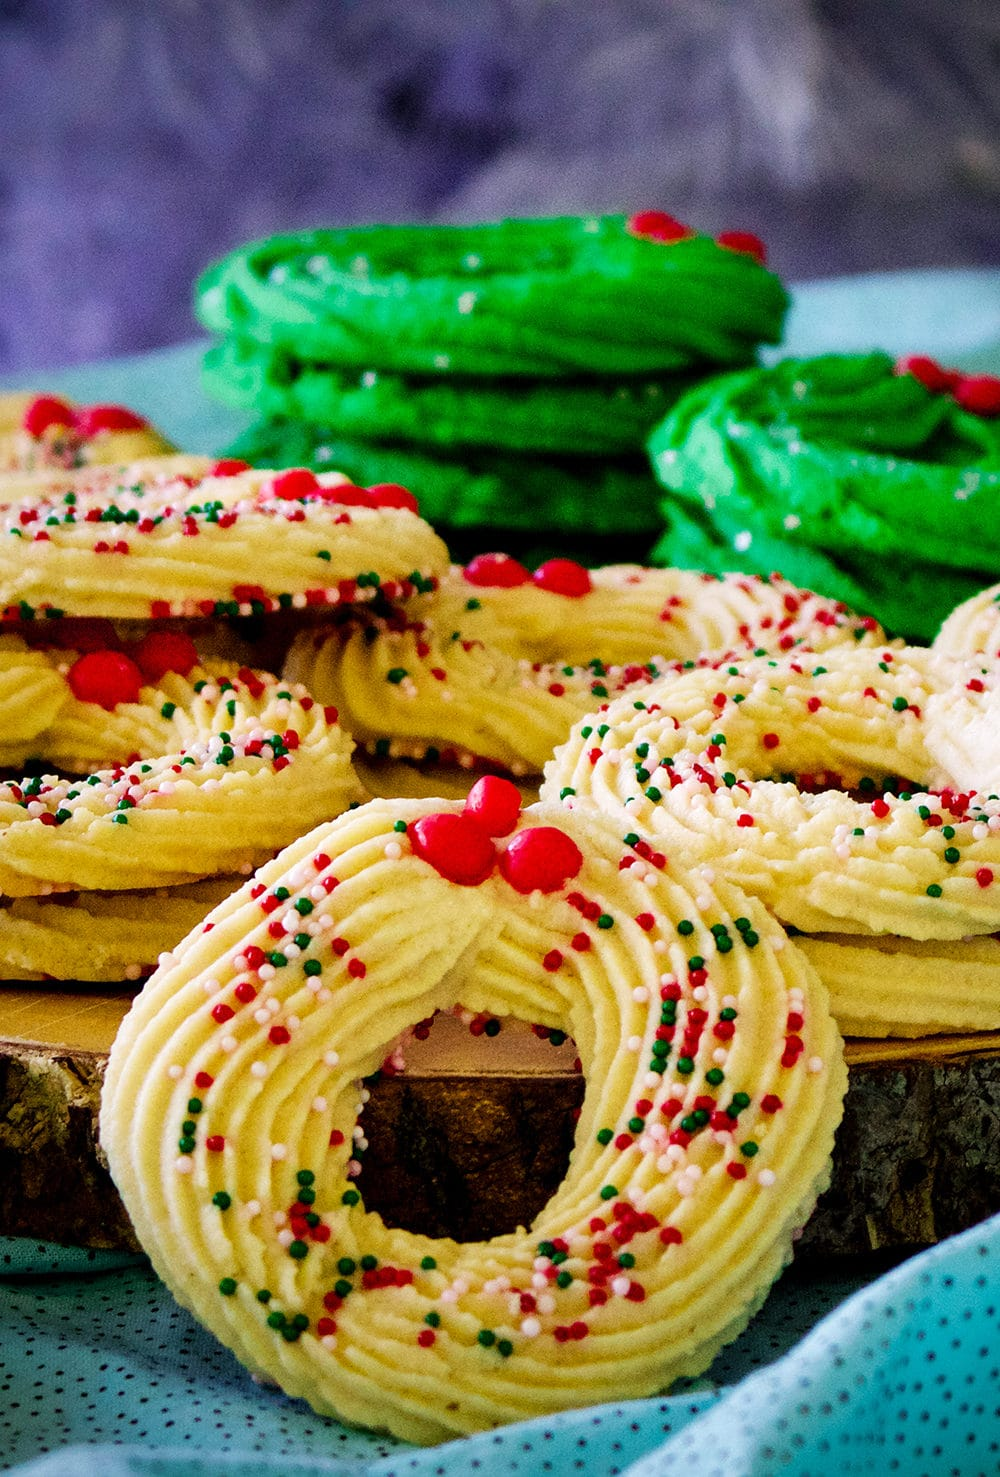 A tray stacked with Spritz cookies shaped like Christmas wreaths.